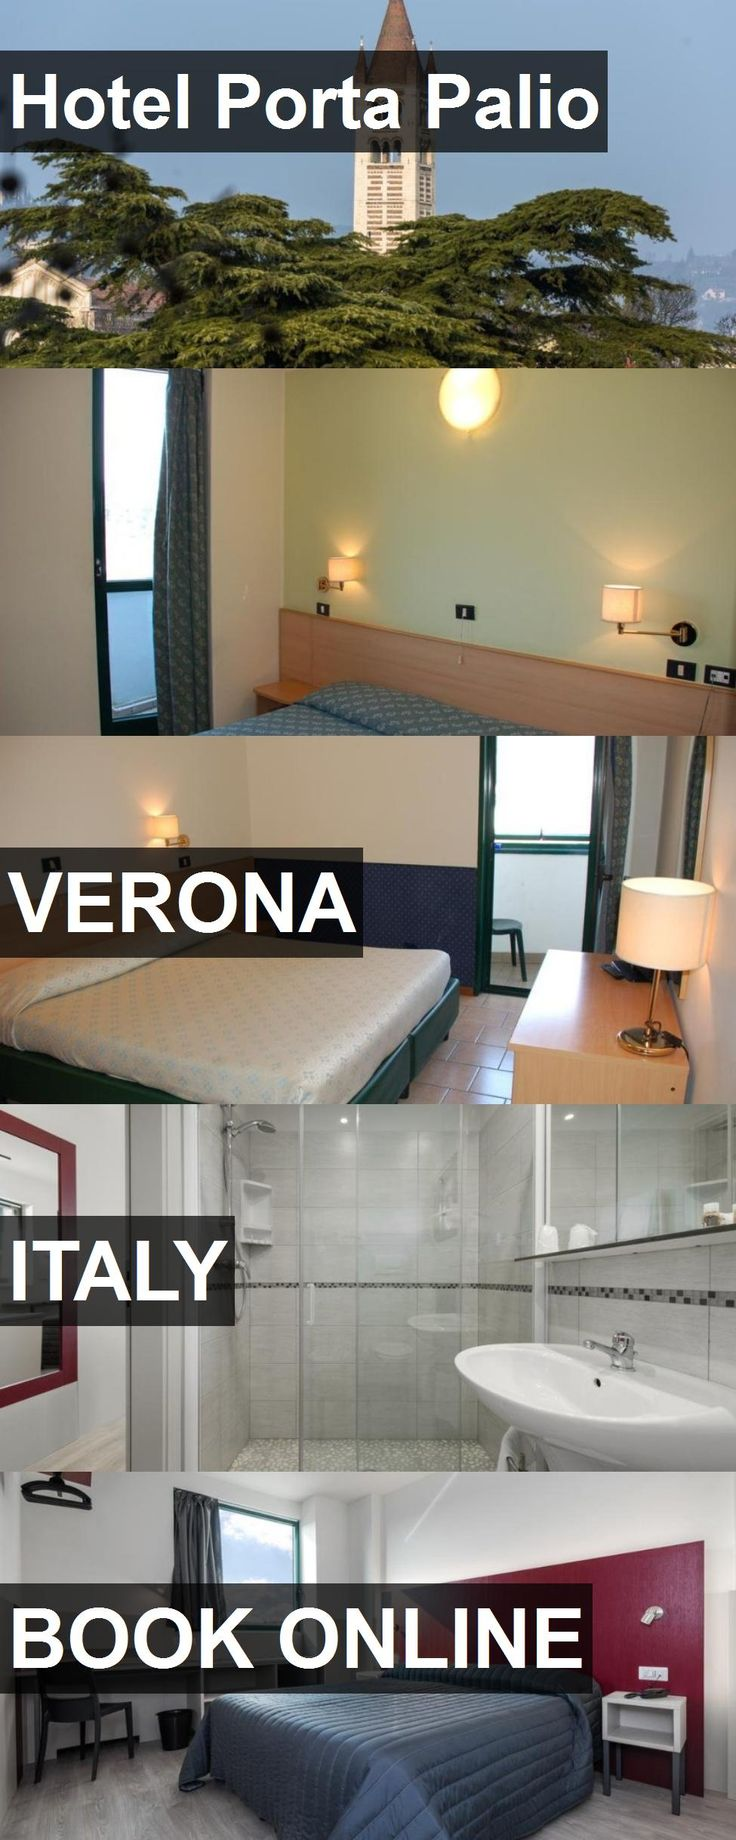 Hotel Hotel Porta Palio in Verona, Italy. For more information, photos, reviews and best prices please follow the link. #Italy #Verona #HotelPortaPalio #hotel #travel #vacation